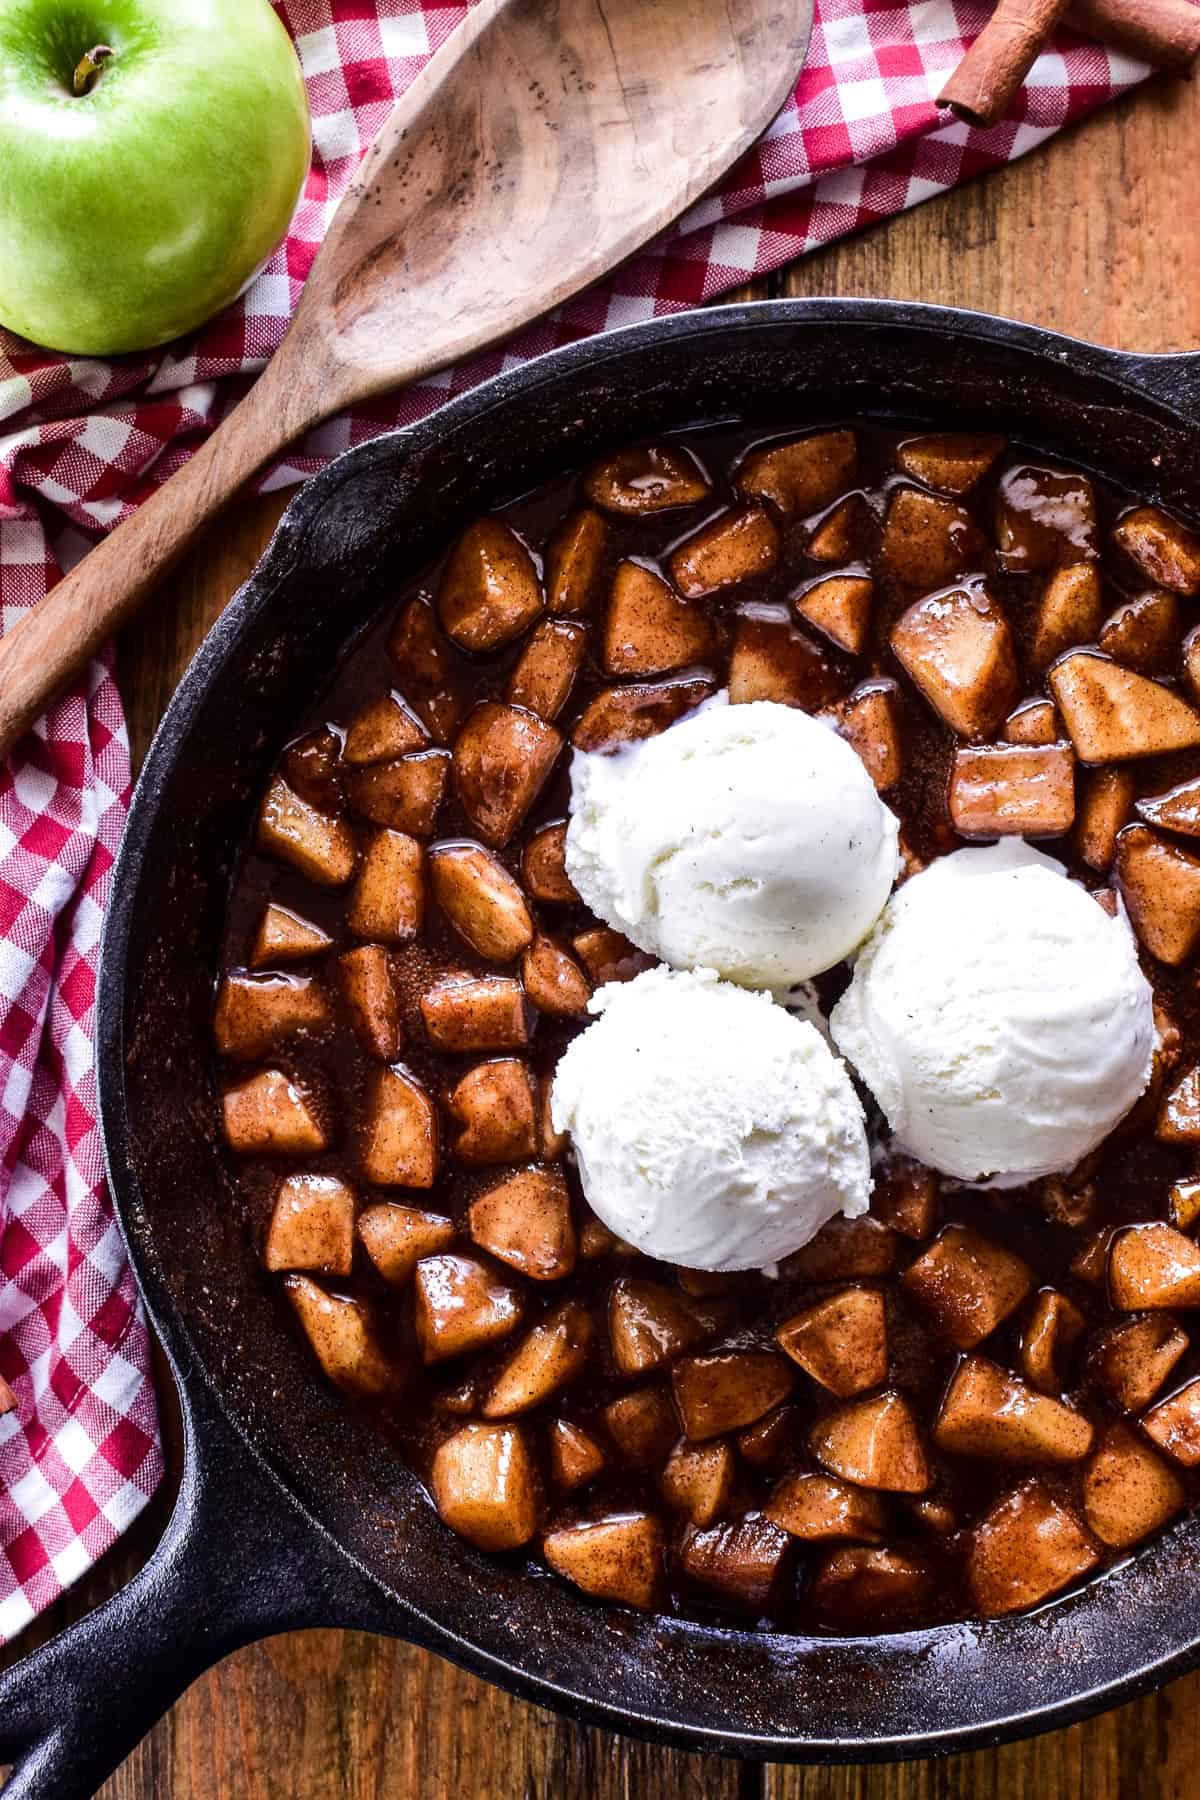 Fried Apples in a cast iron skillet with 3 scoops of vanilla ice cream and a wooden serving spoon